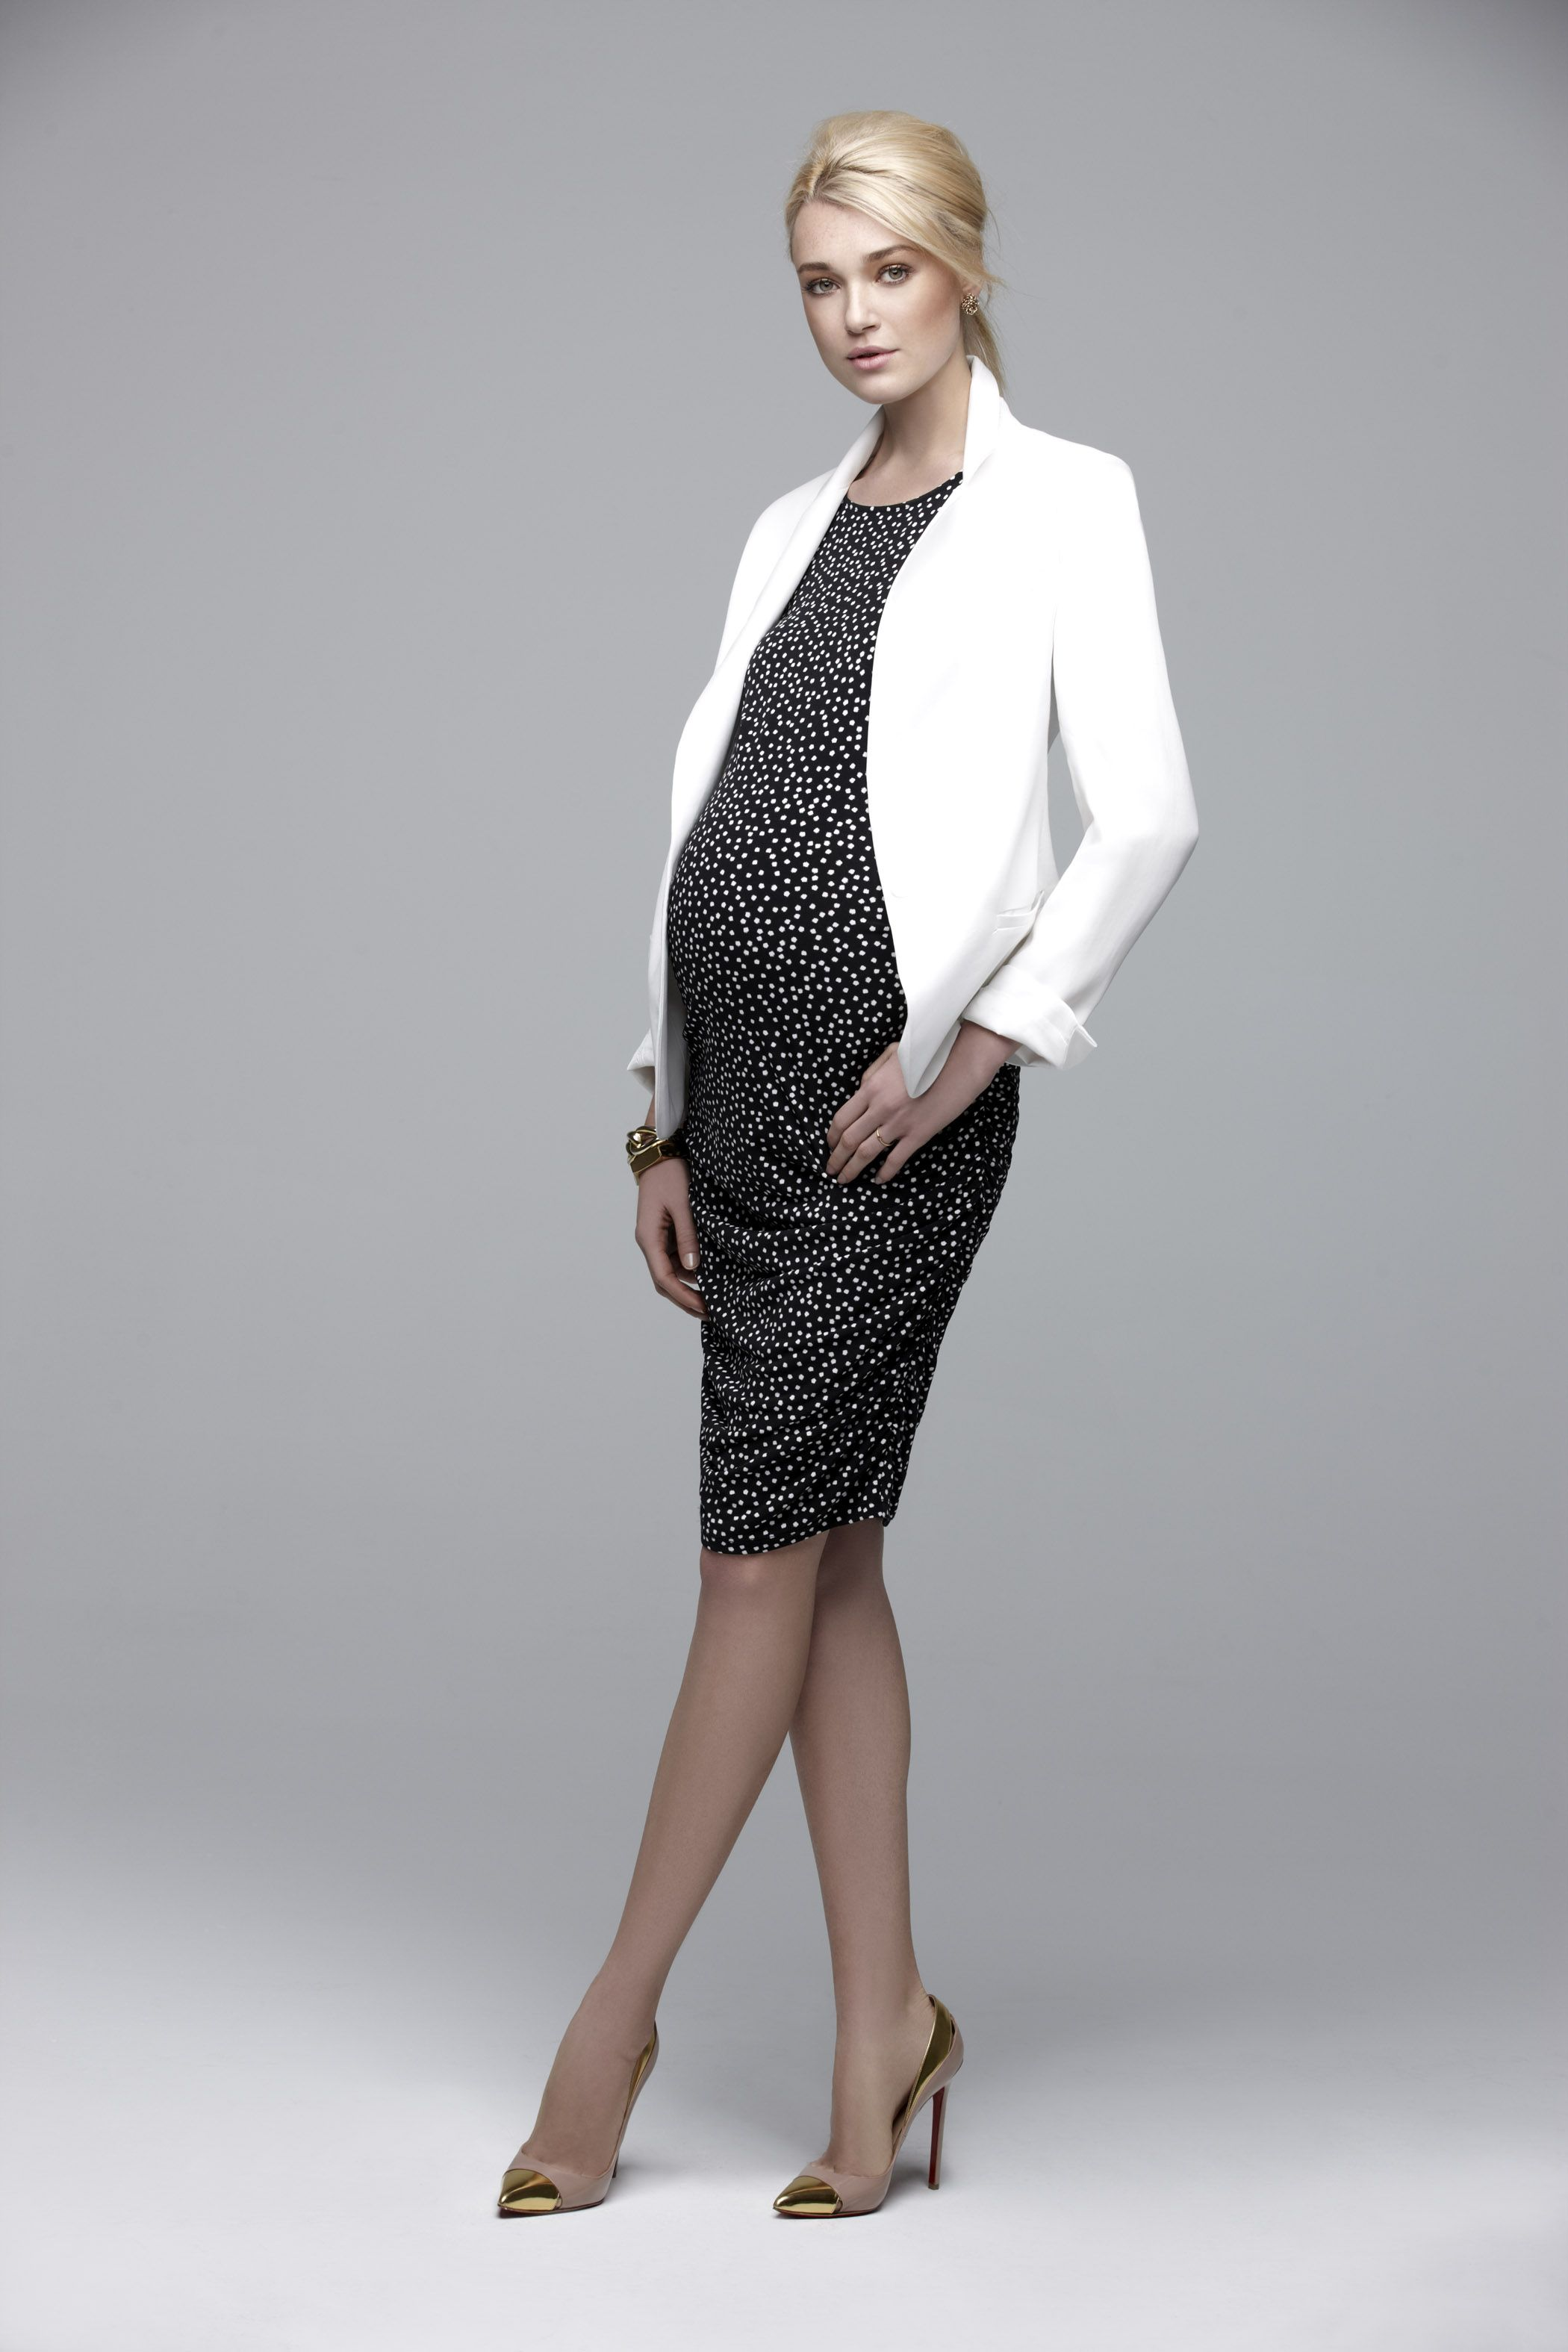 94559faac929b 5 Ways to Get the Most Out of Your Maternity Work Wardrobe | SF ...